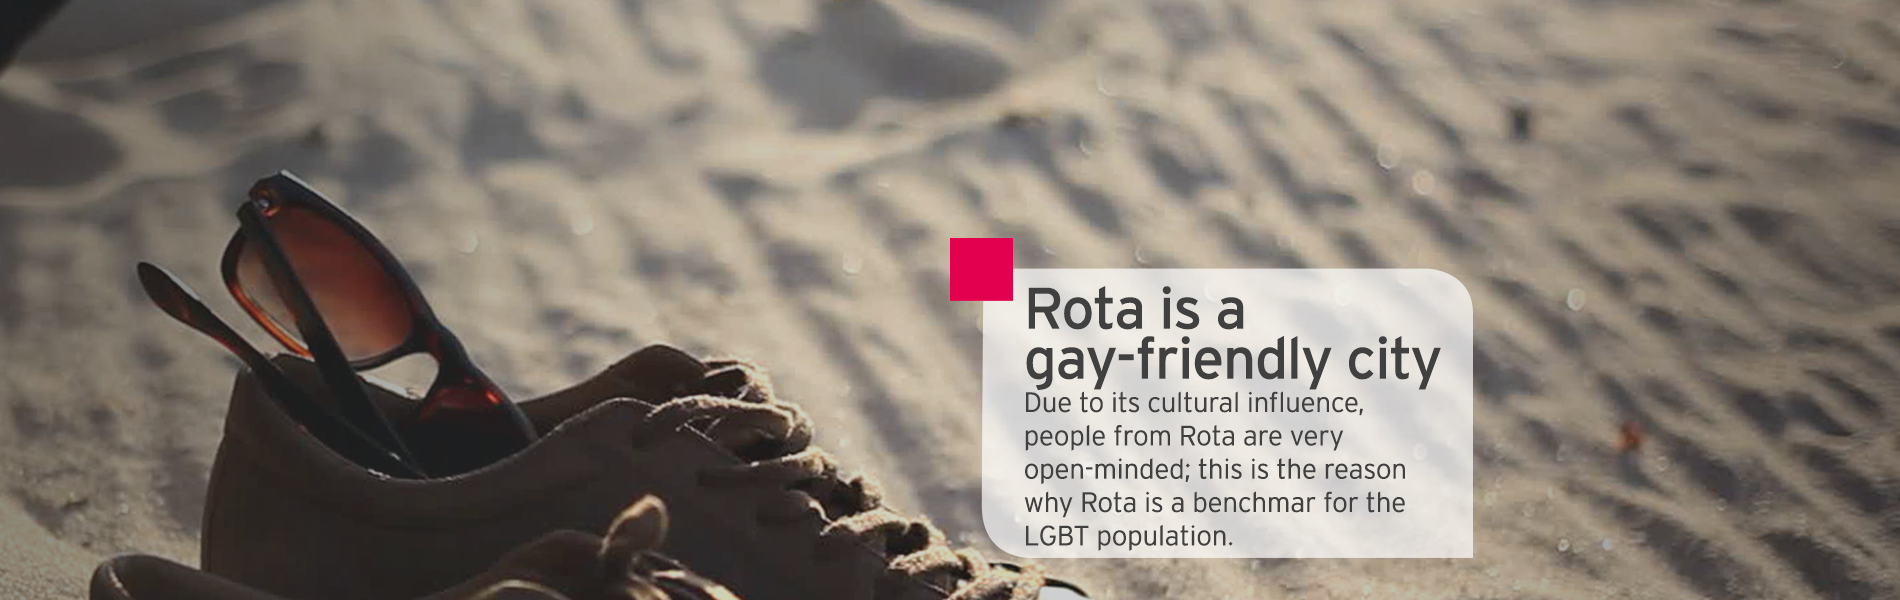 rota is gayfriendly